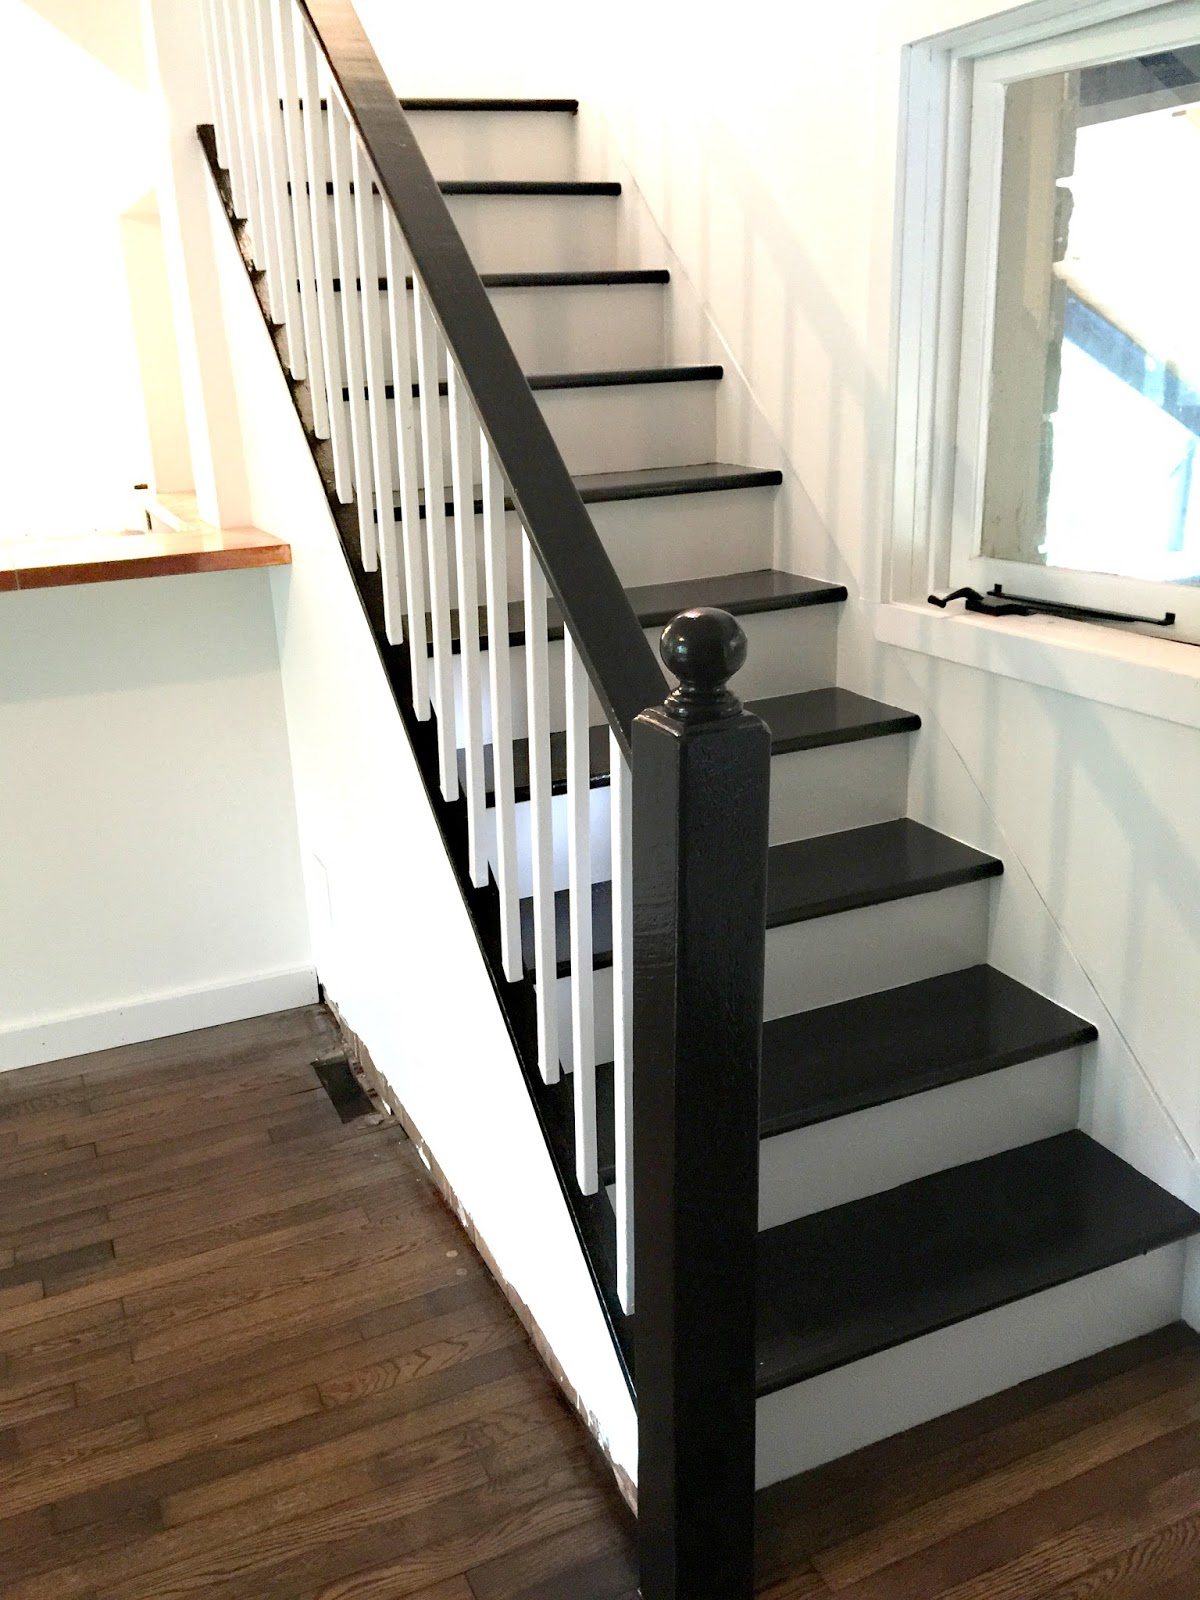 FACCI DESIGNS How To Paint A Staircase Black amp White